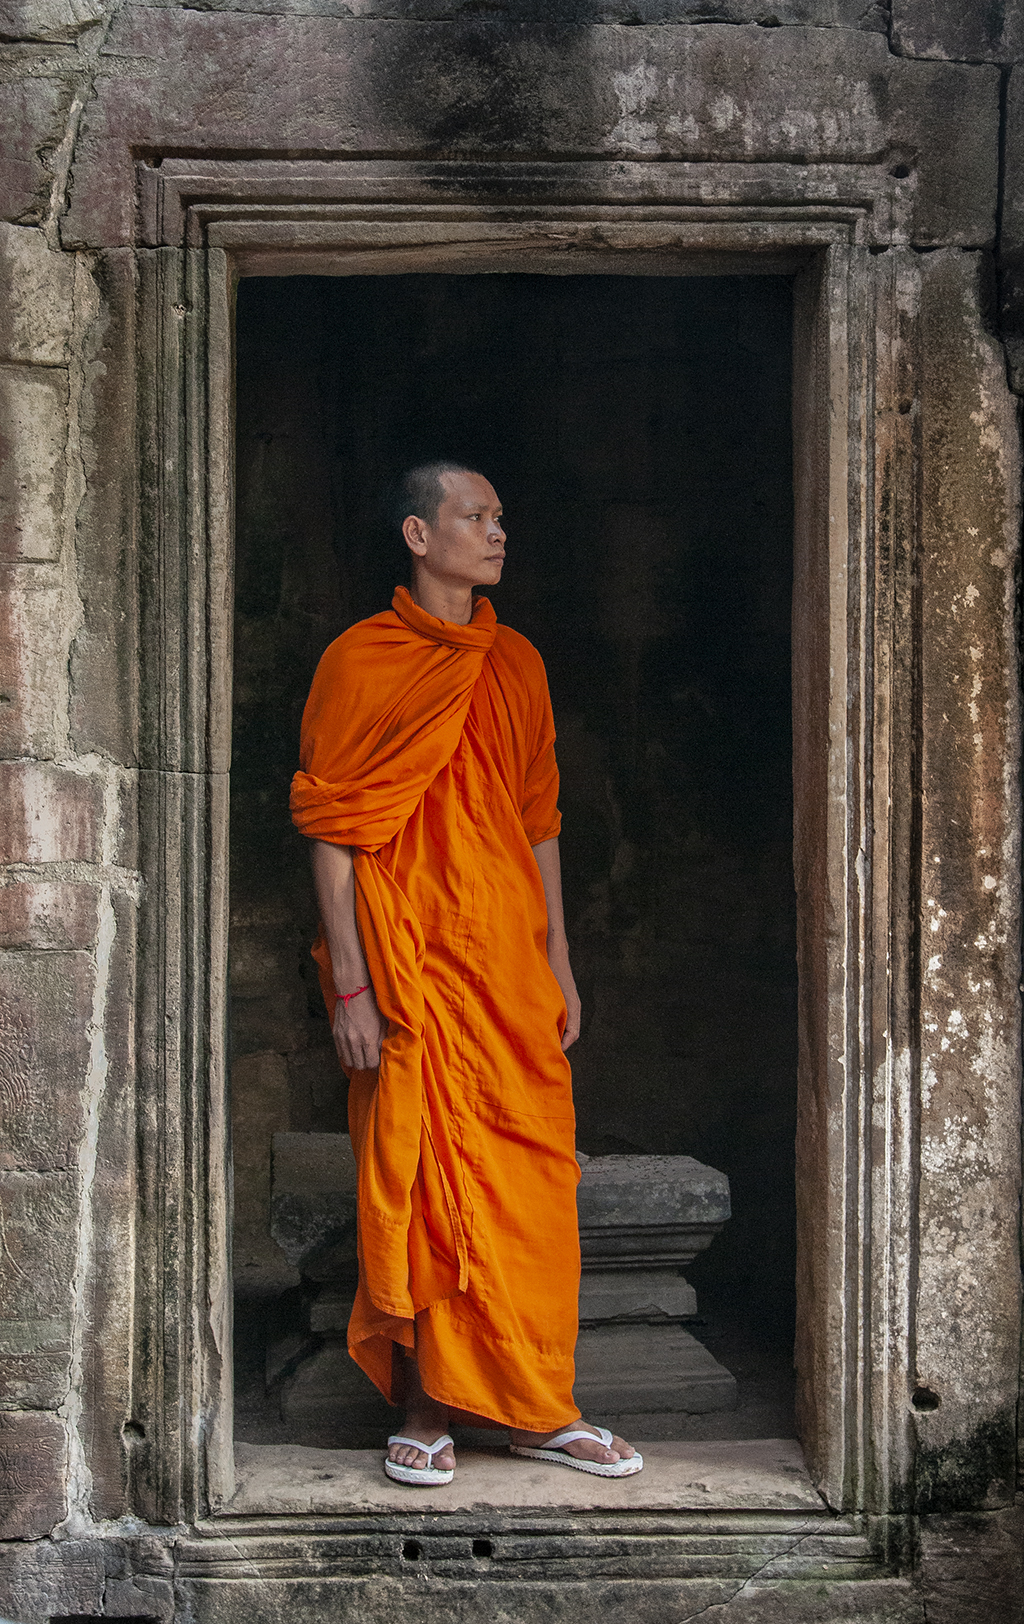 Doorways and windows can provide intriguing compositional elements to frame your subjects, like in this image of a monk from Cambodia.